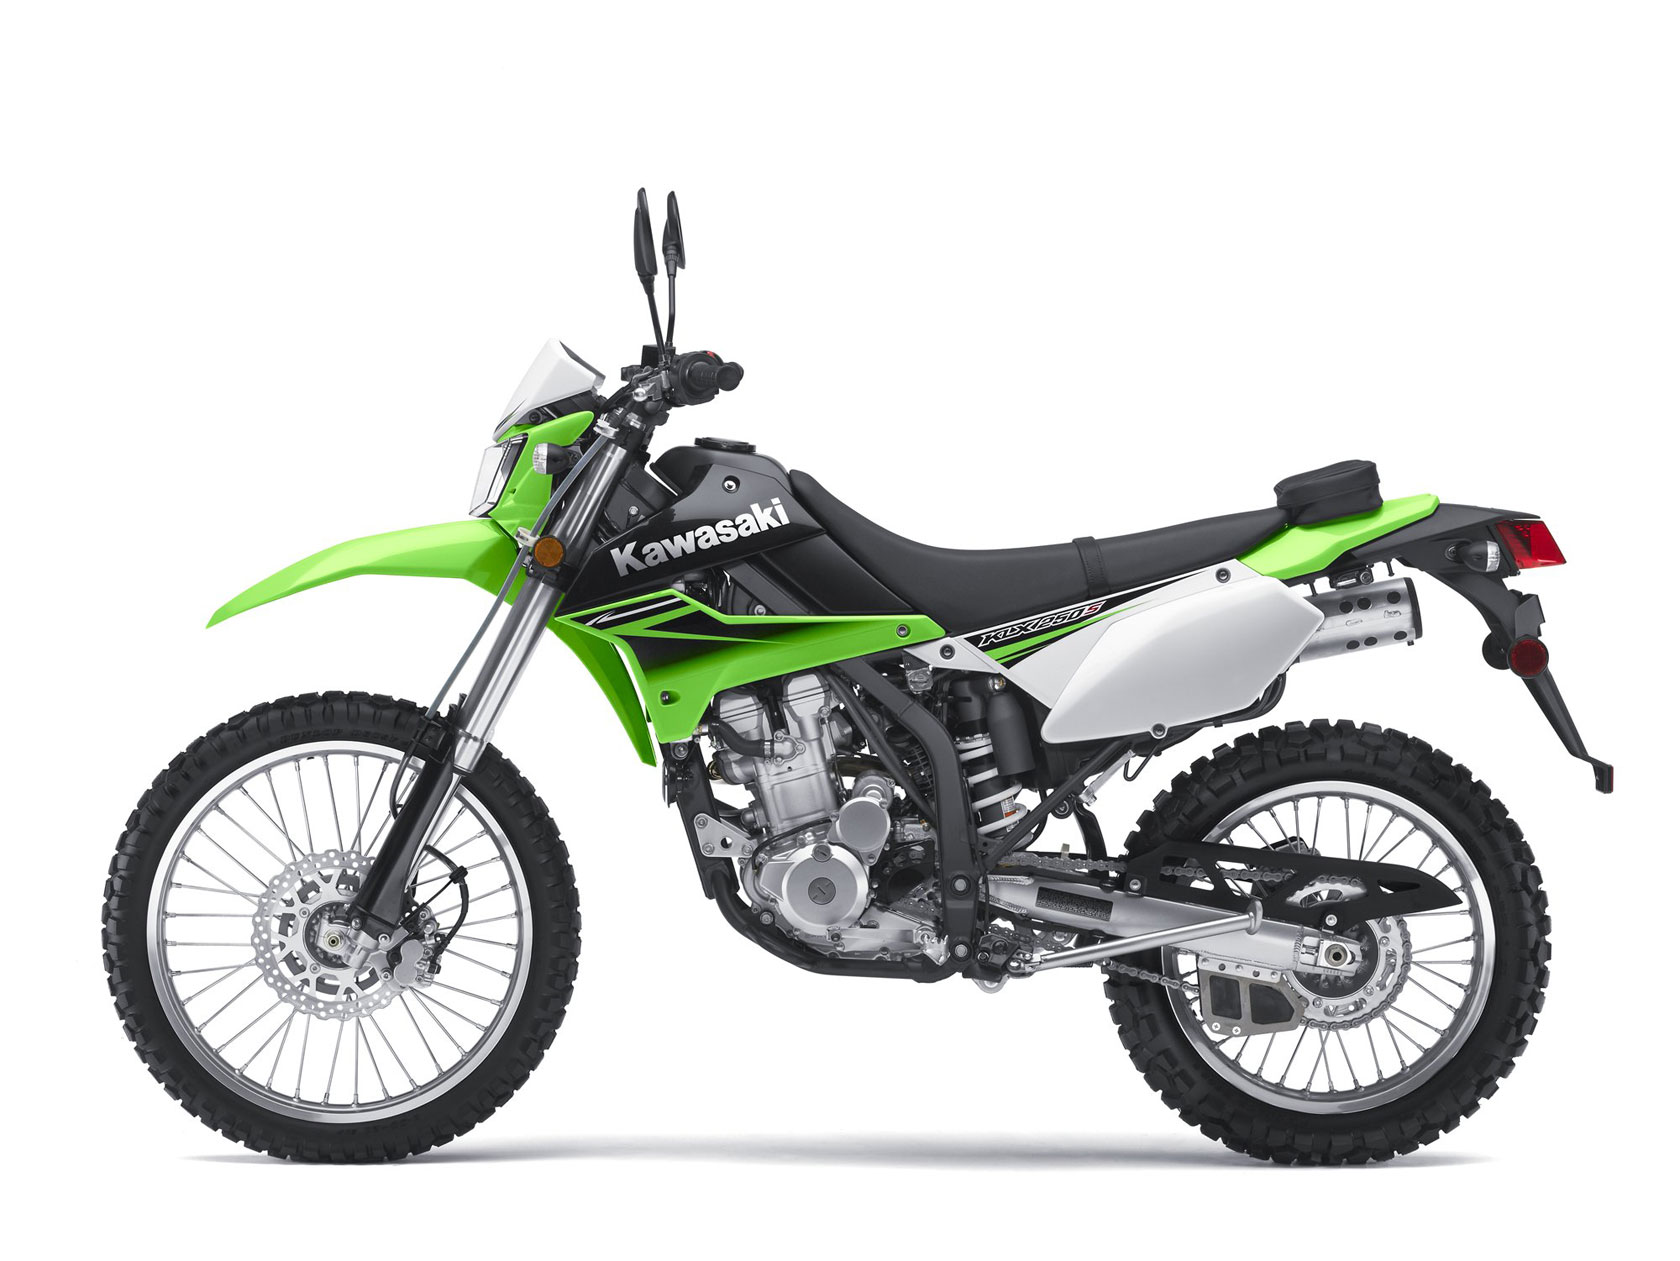 2010 Kawasaki Klx 250 Wiring Diagram Electrical Diagrams Klr S Pics Specs And List Of Seriess By Year Lowering Kit